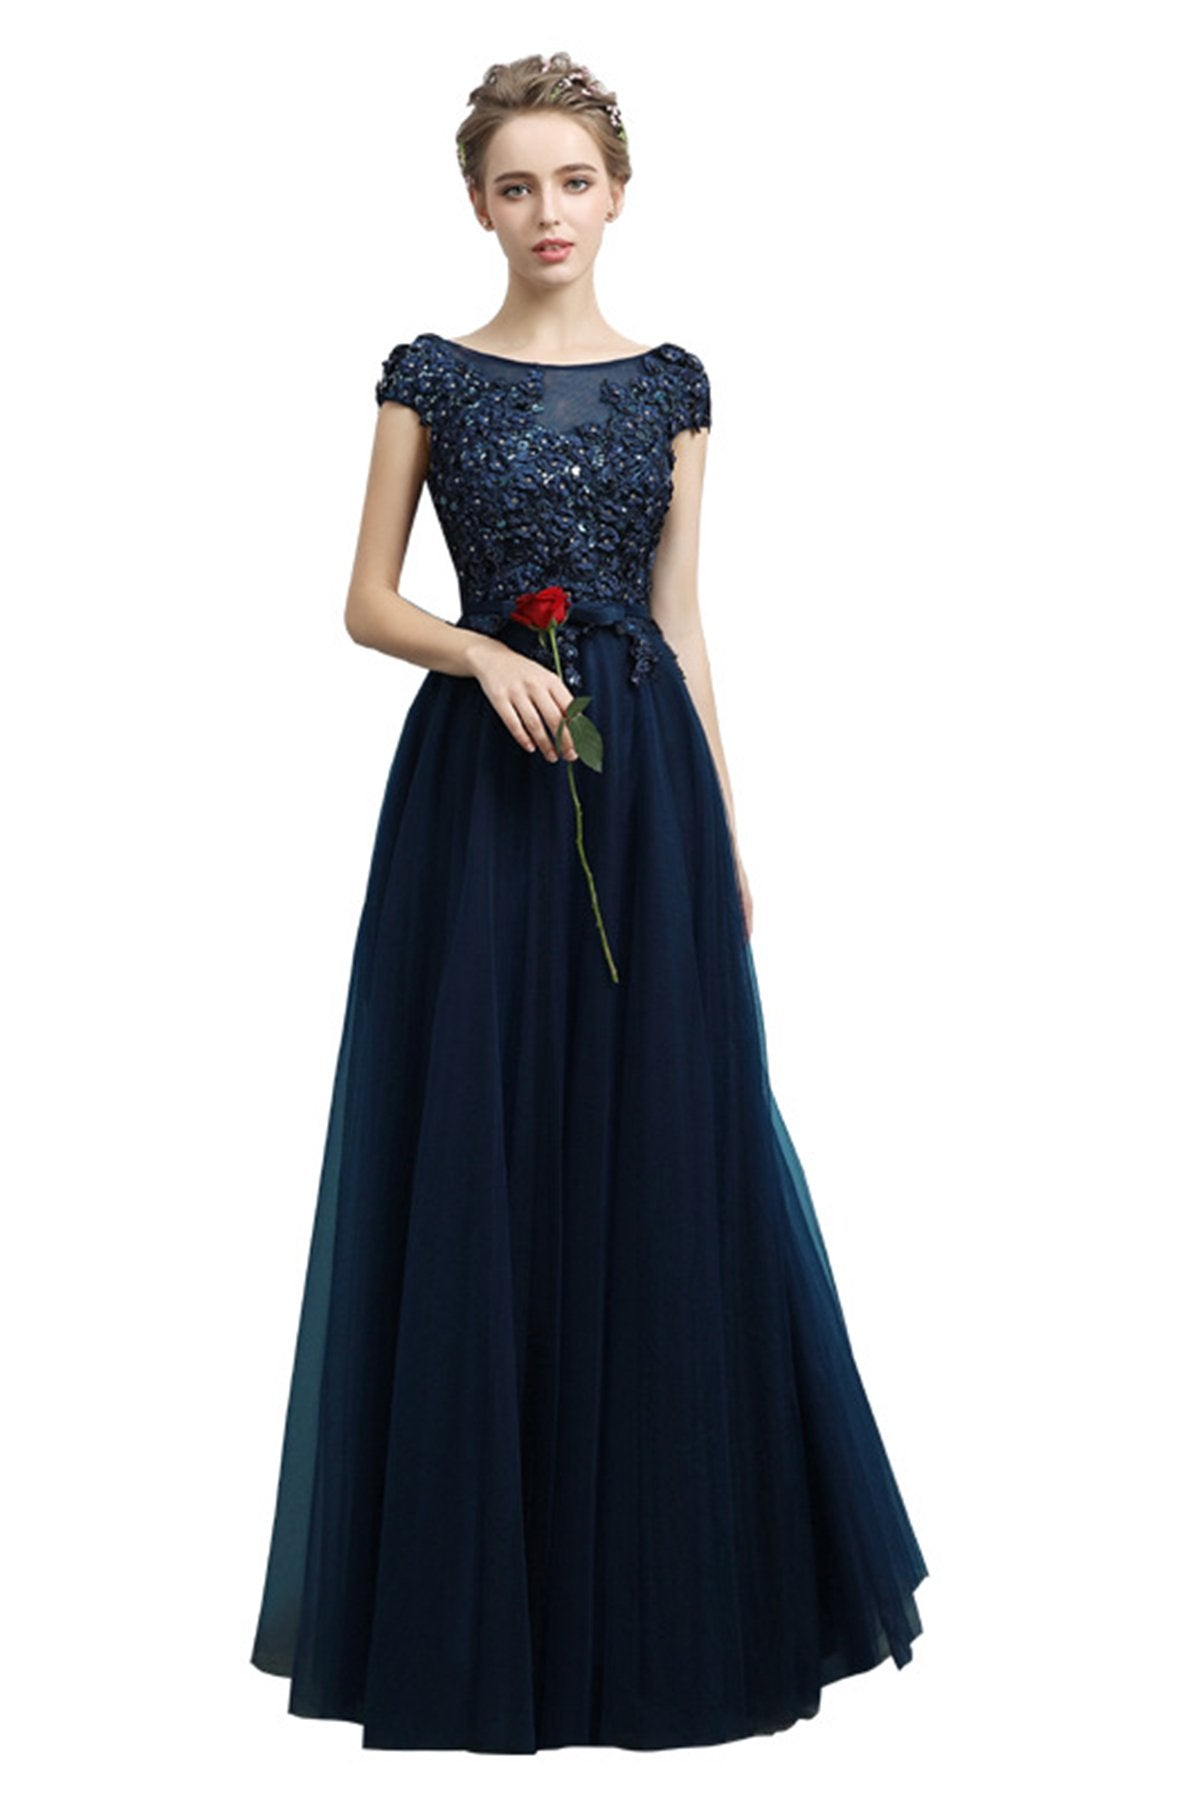 Sequins Design Banquet Evening Dress Evening Dresses